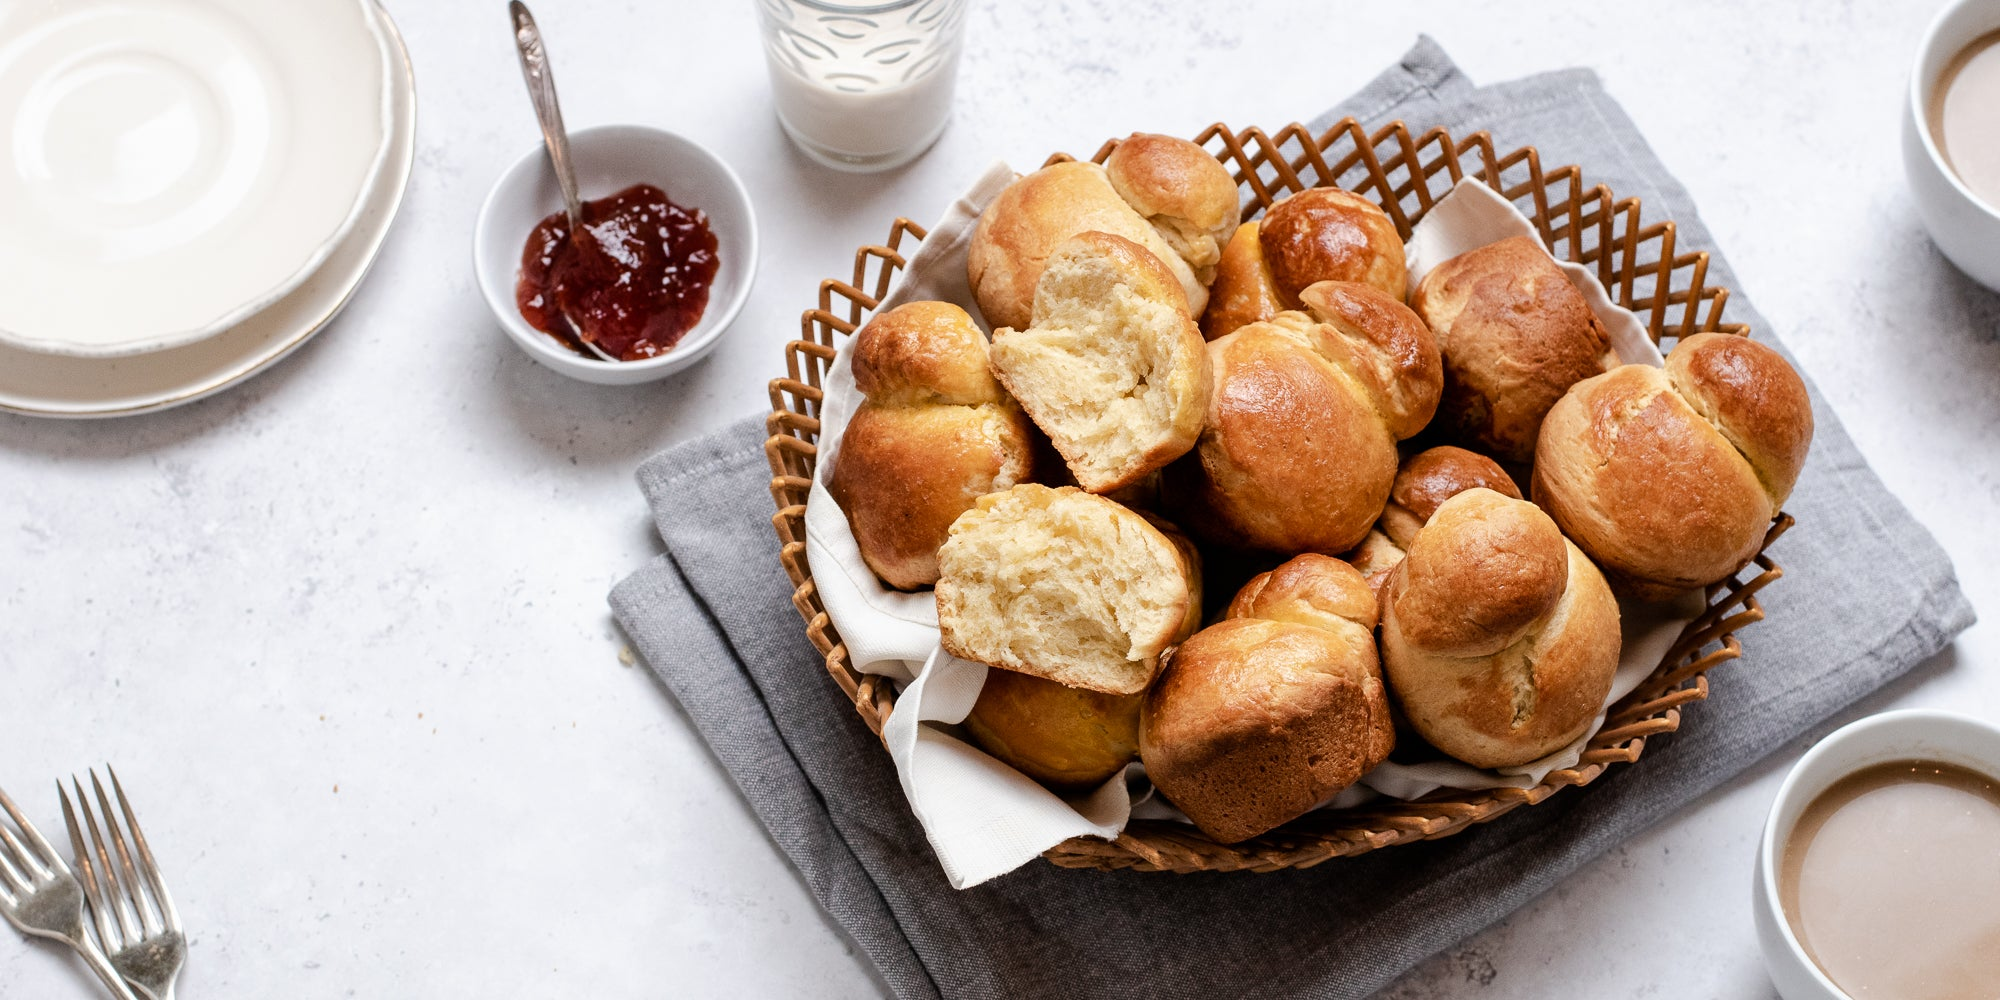 Basket of fresh Brioche, with one torn apart showing the fluffy inside. Next to a small bowl of jam with a spoon